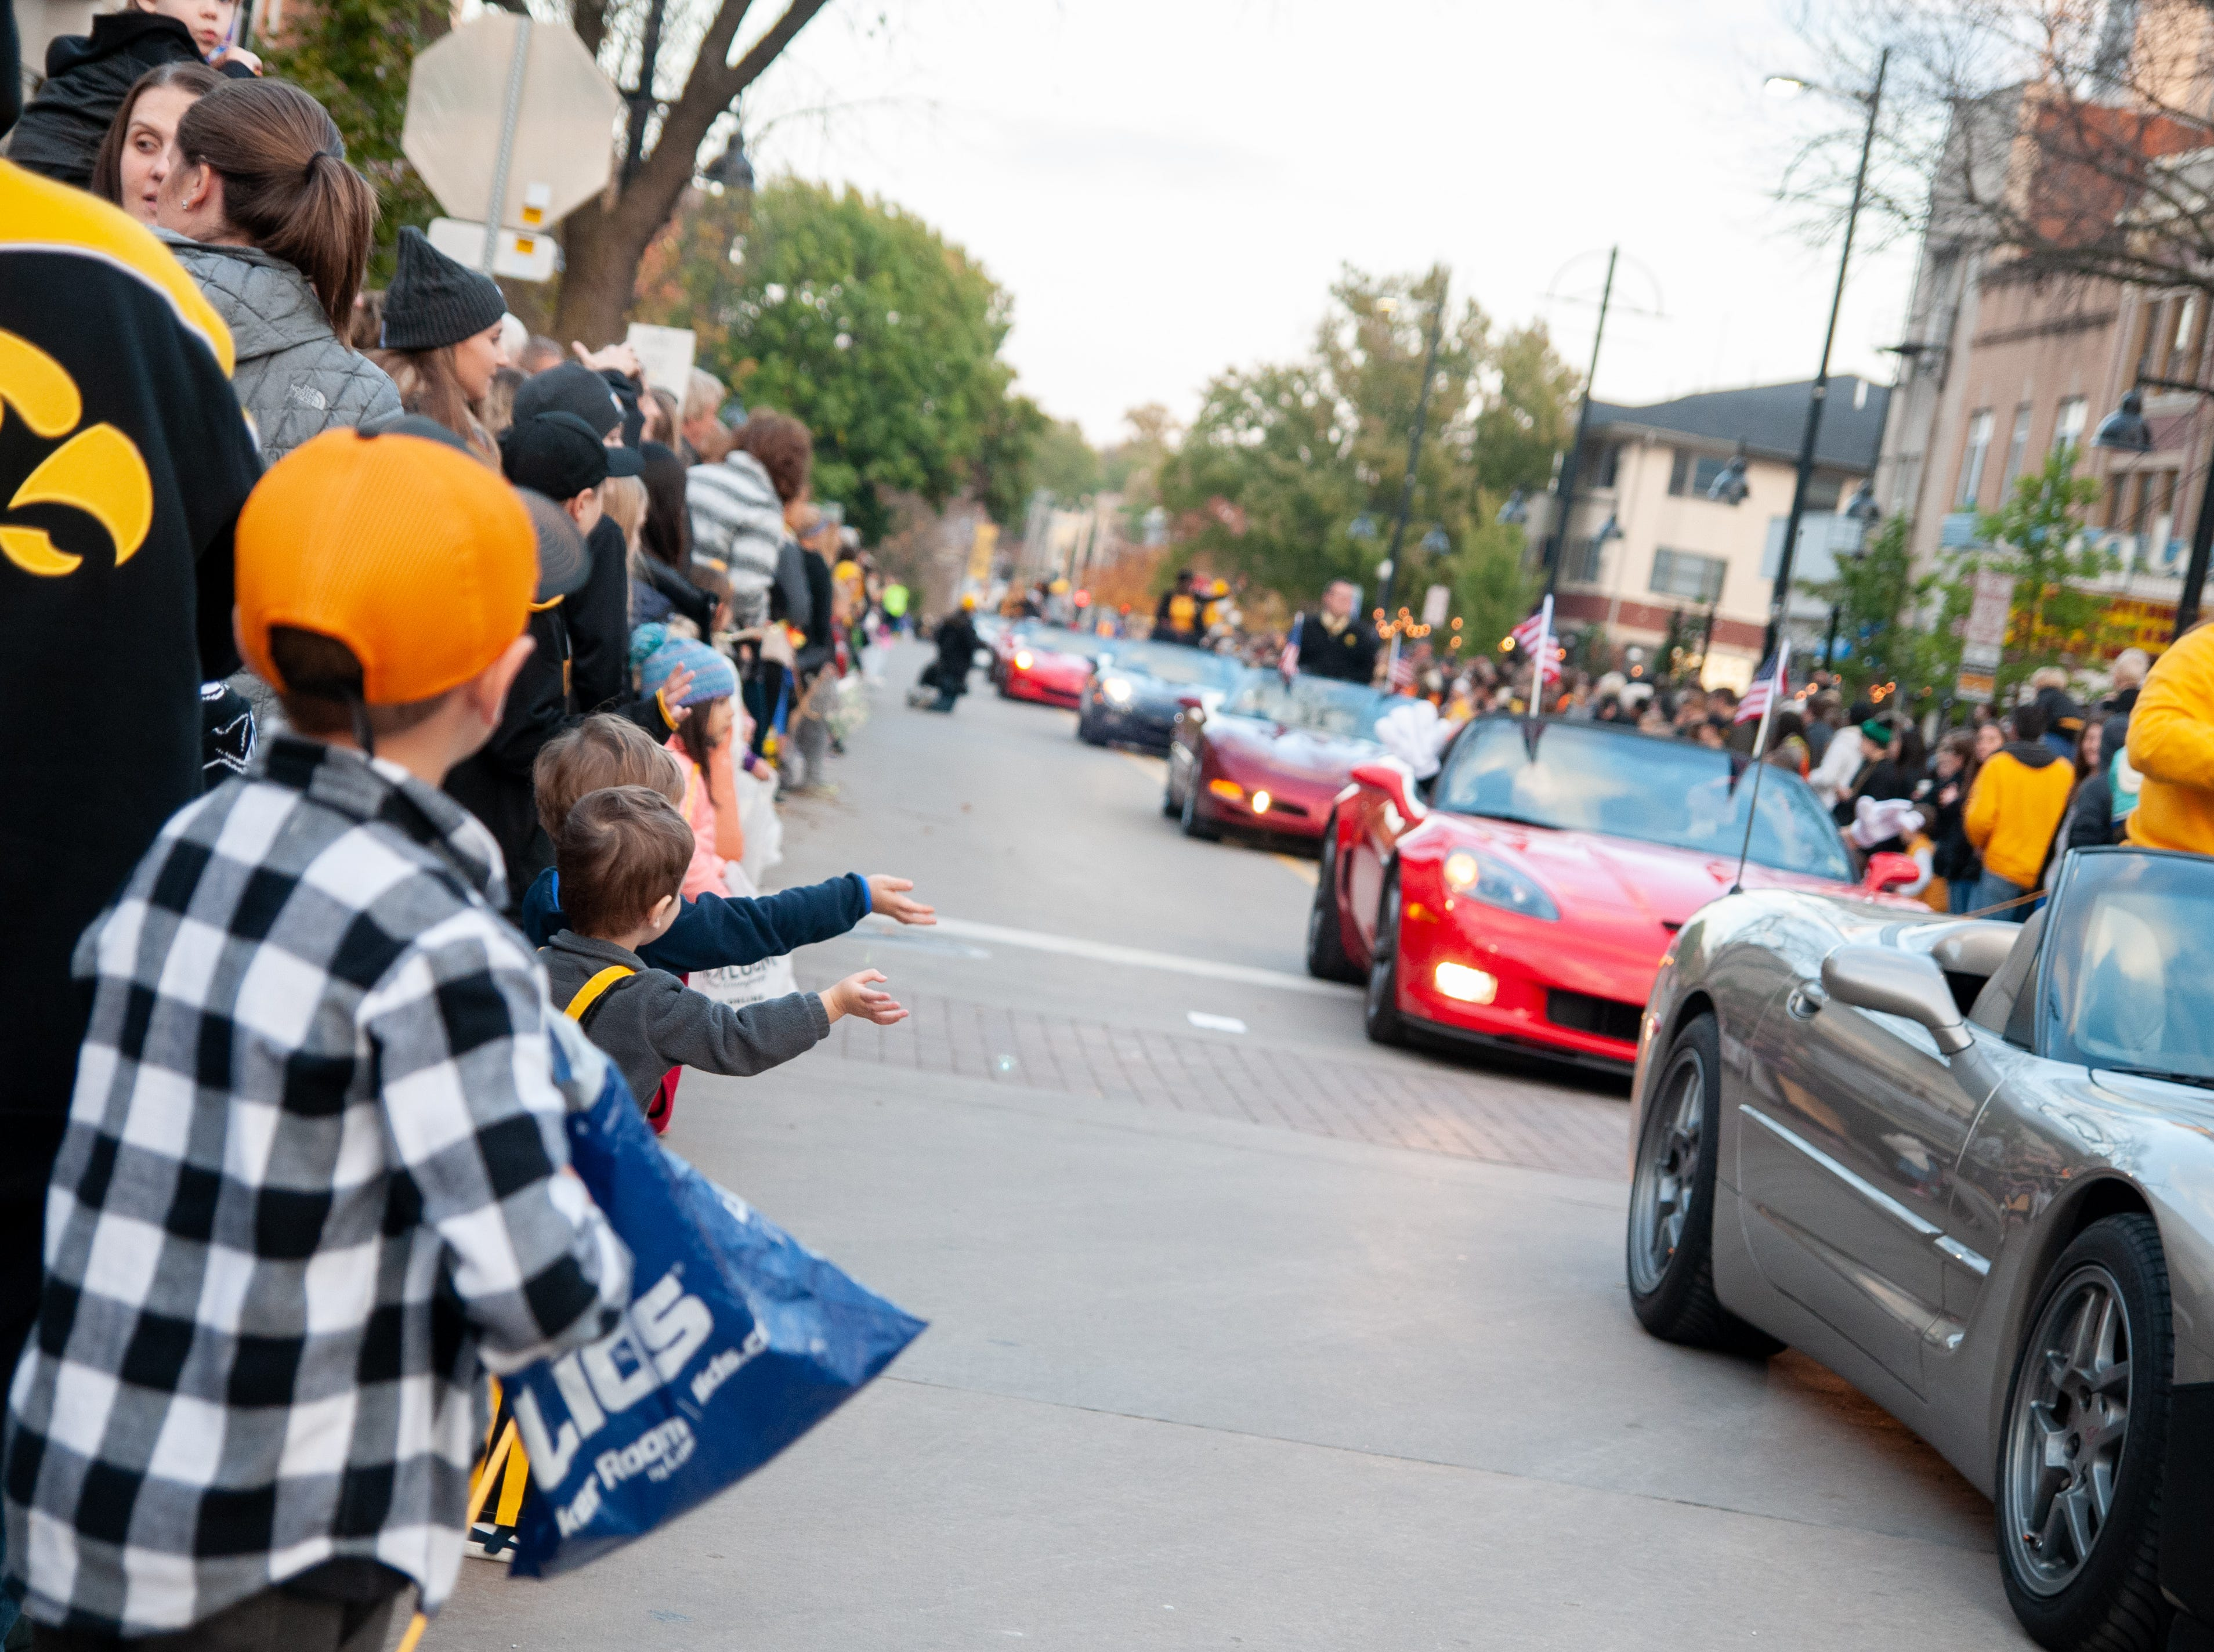 Distinguished Alumni Award recipients wave to crowd members during the 2018 Homecoming parade, Friday, Oct. 19, 2018, in Iowa City.